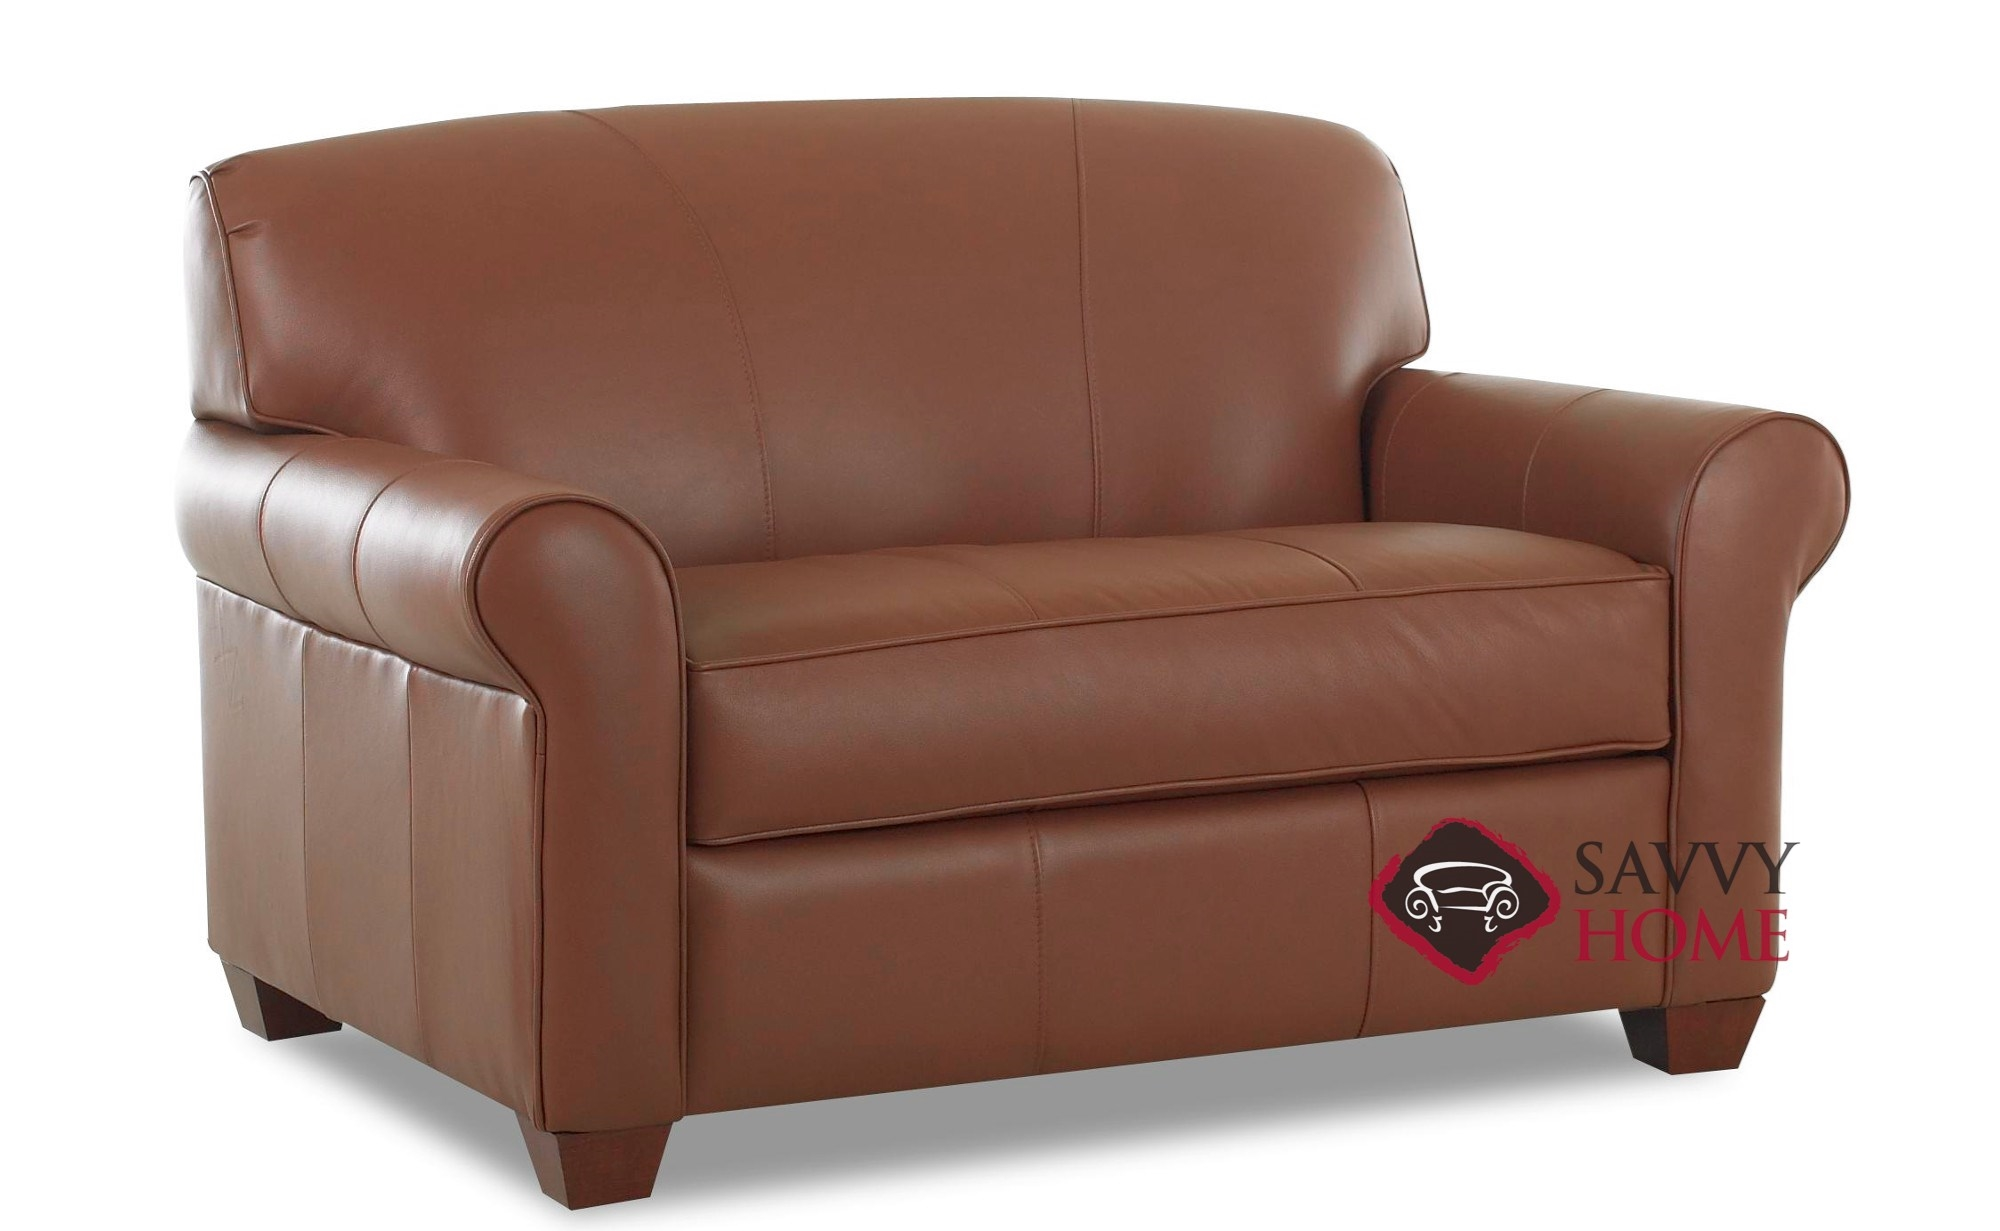 sofa mart leather chairs wall lissoni calgary sleeper sofas chair by savvy is fully